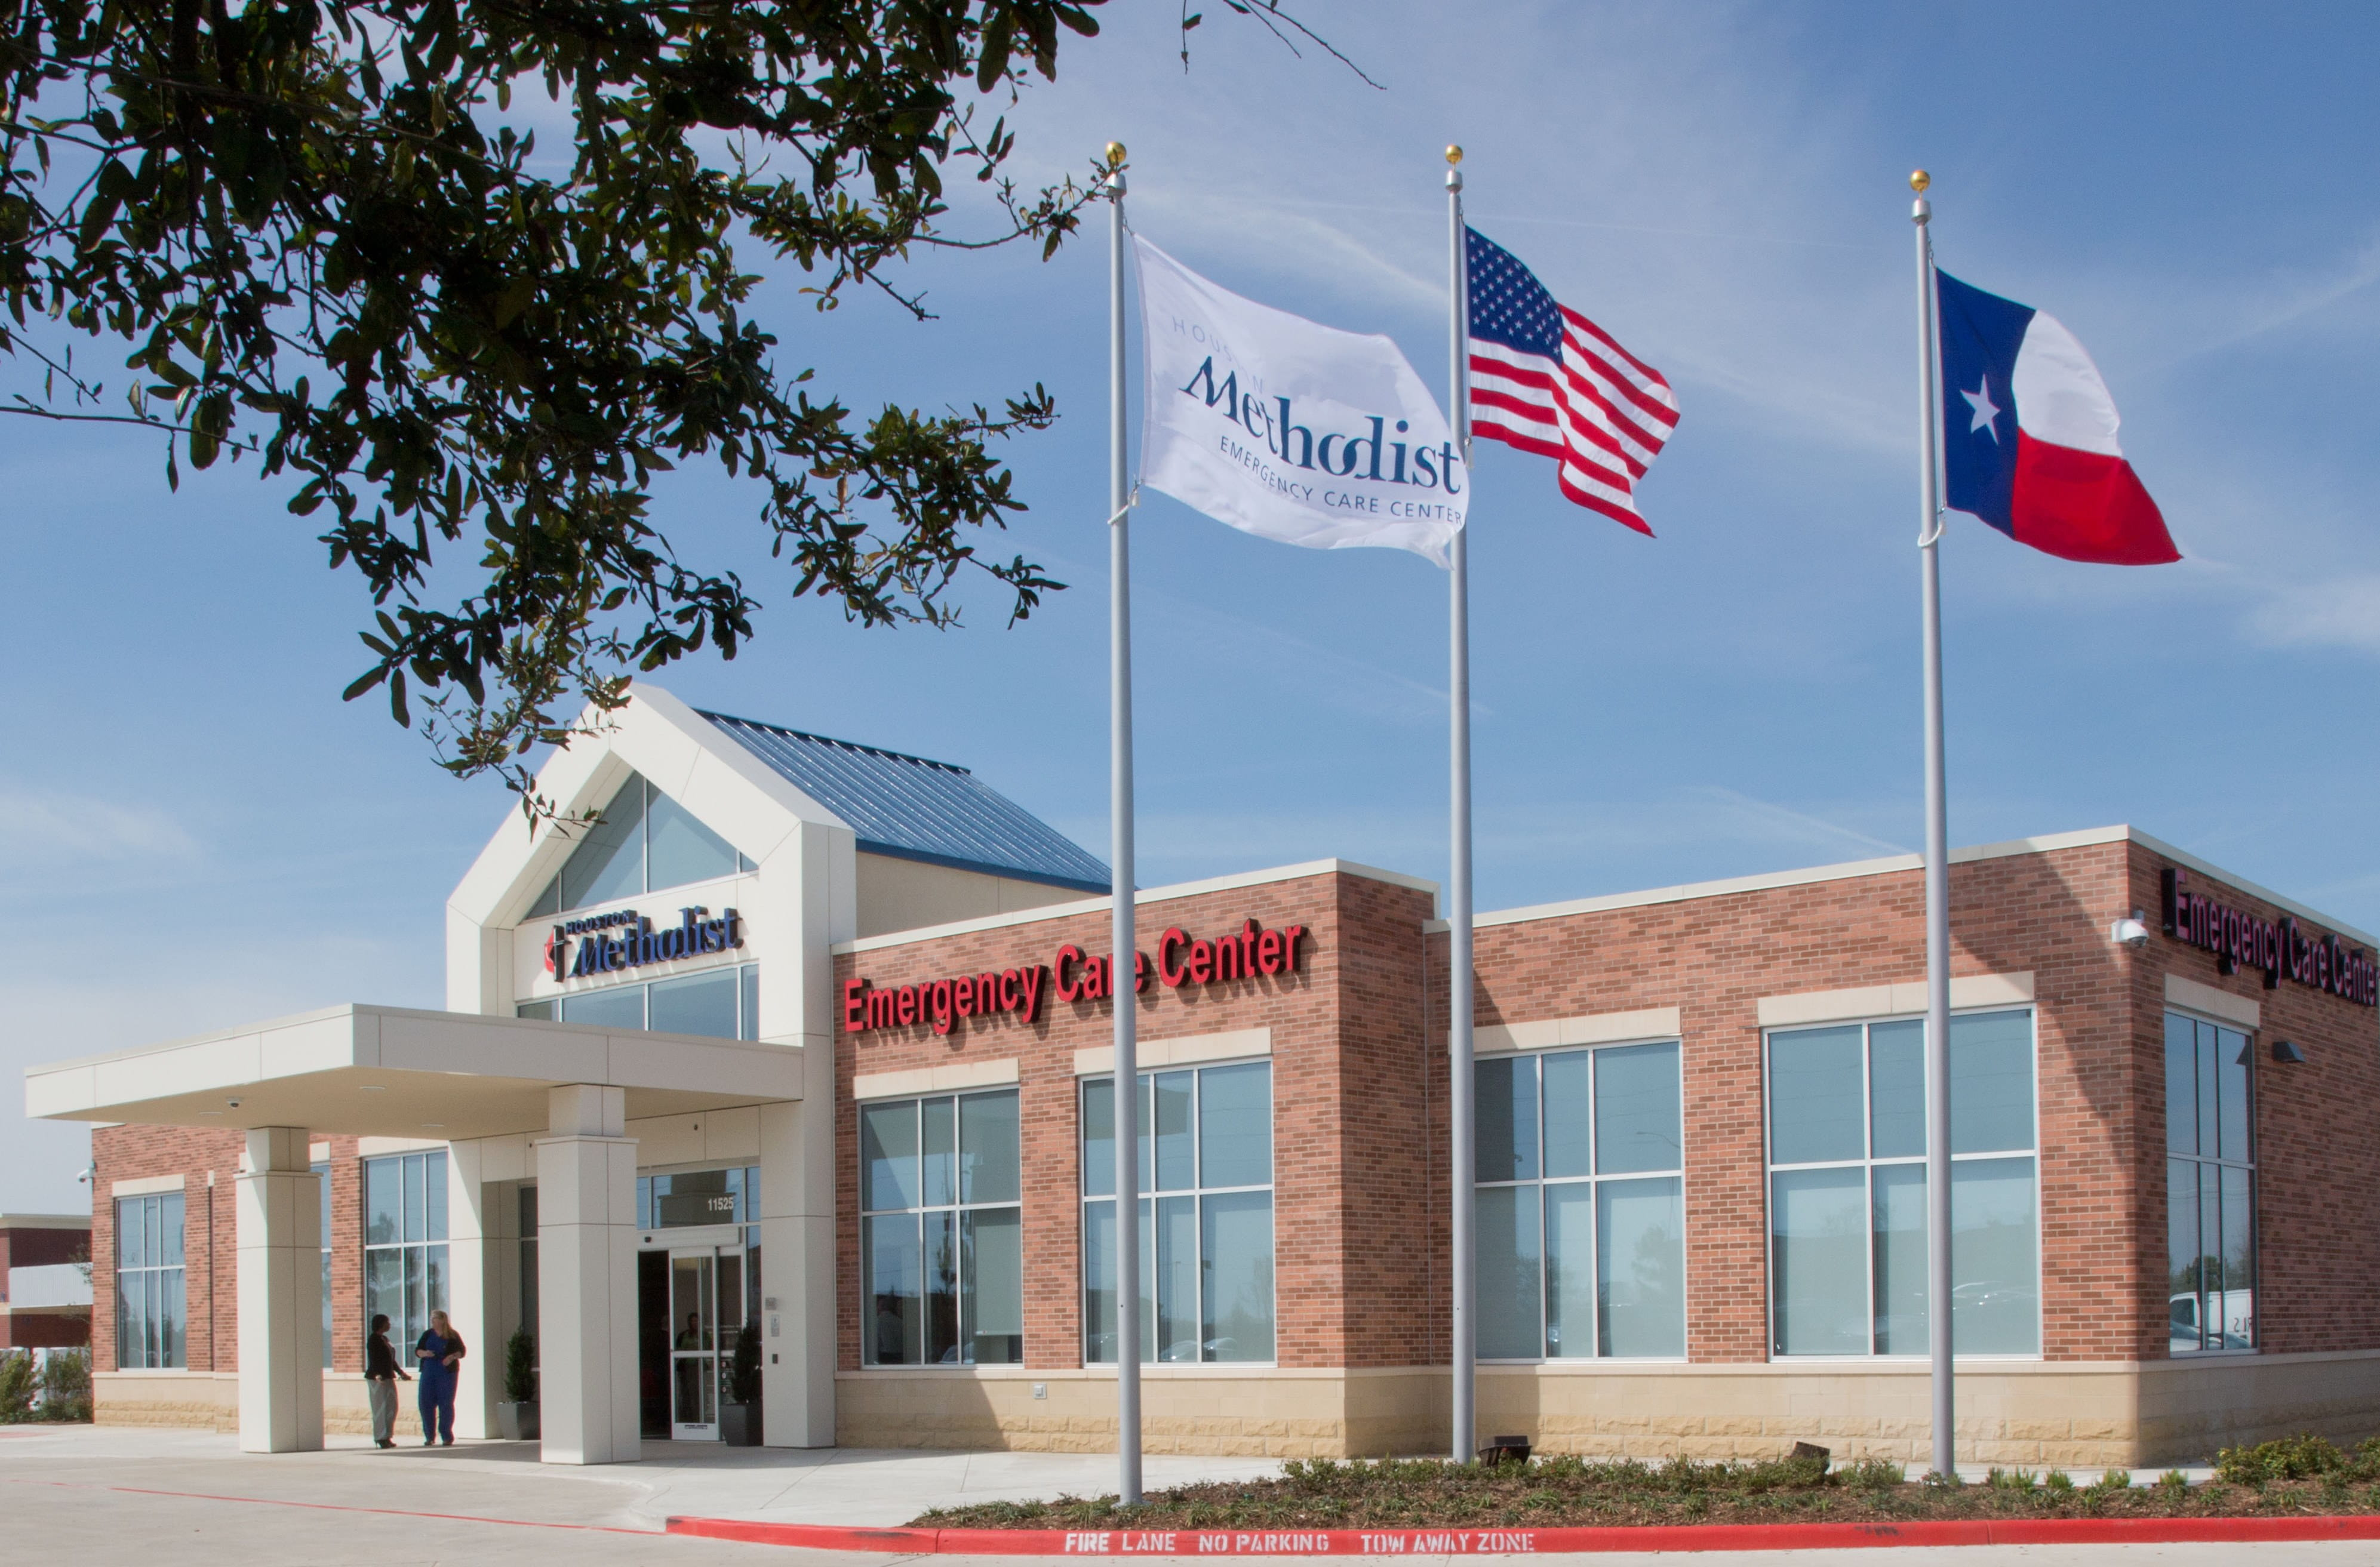 Houston Methodist Emergency Care Center In Pearland